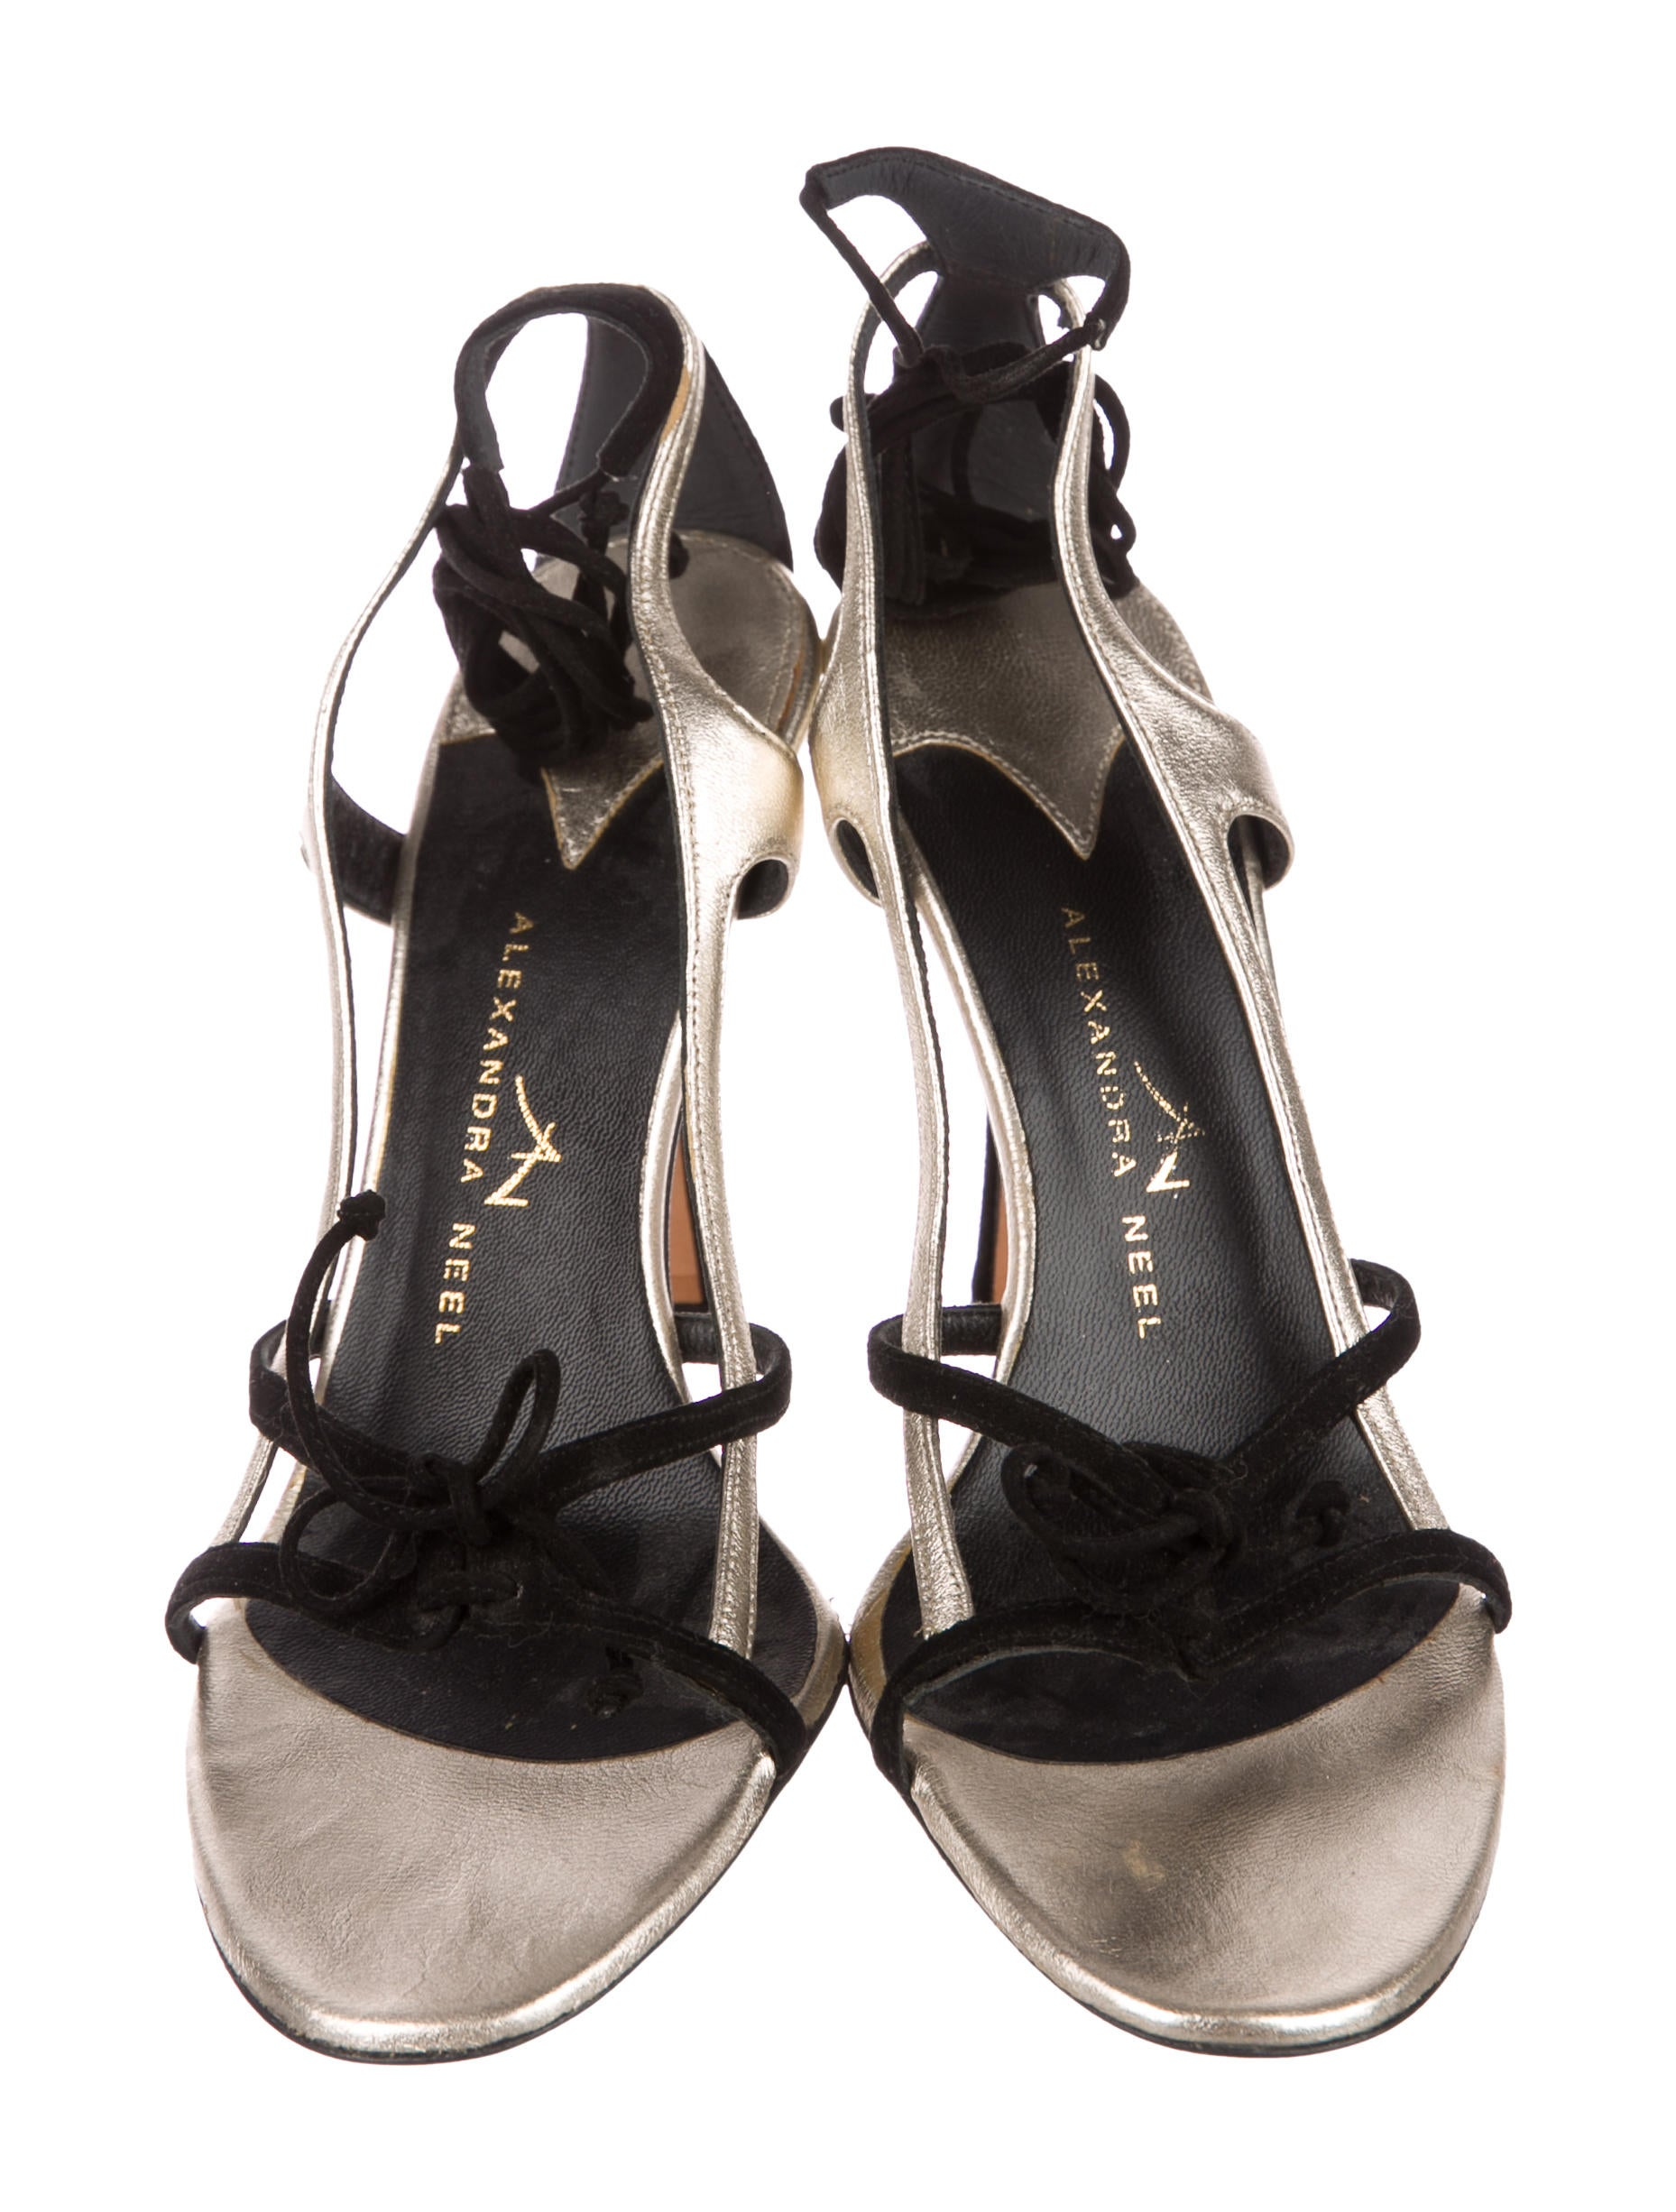 Alexandra Neel Suede Lace-Up Sandals genuine cheap price amazon sale online discount codes clearance store YFpzEsha8